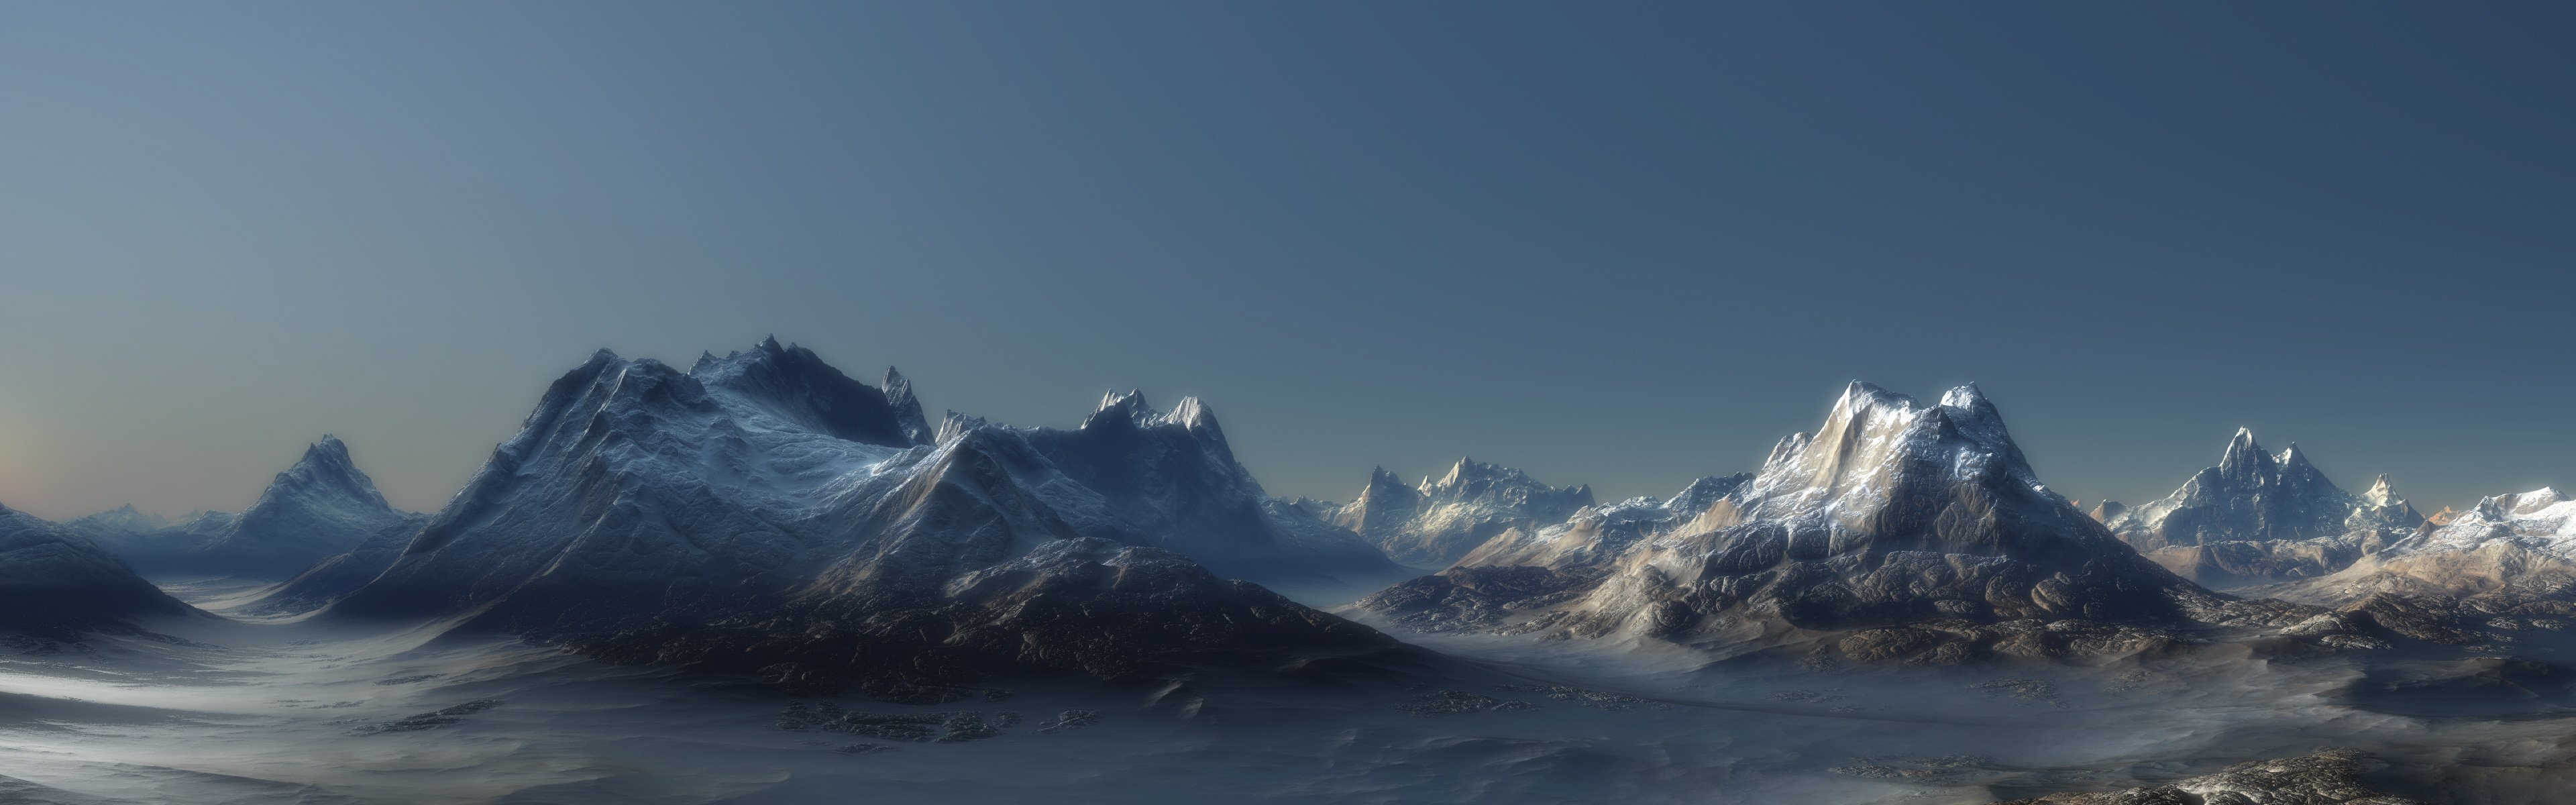 Mountains landscapes panorama wallpaper 3840x1200